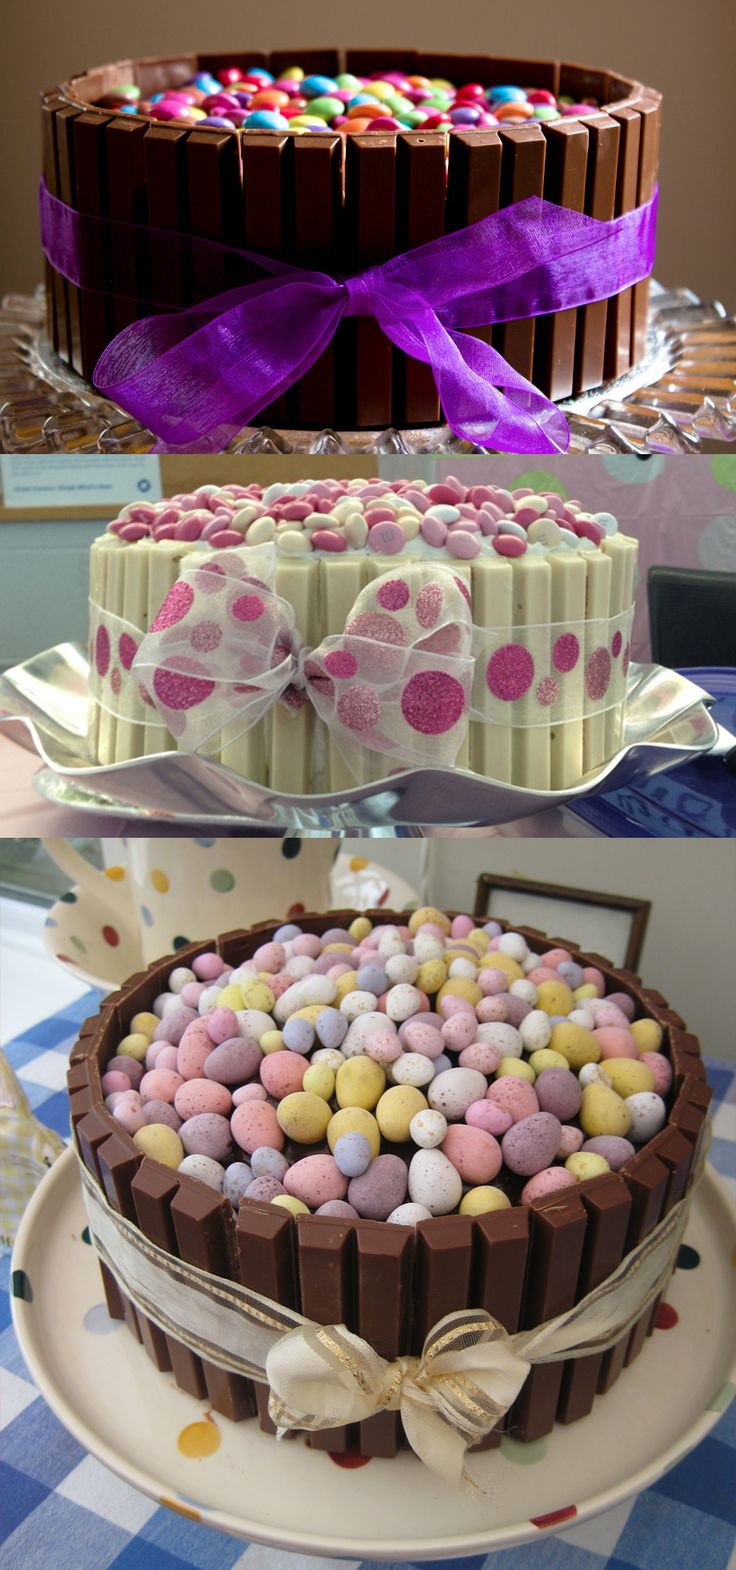 kit-kat-bar-cake-recipes-mini-eggs-strawberries-chocolate-mms-peanut-butter-recipe-how-to-cake-decorating-better-baking-bible-blog-ideas.jpg 836×1 784 pikseli